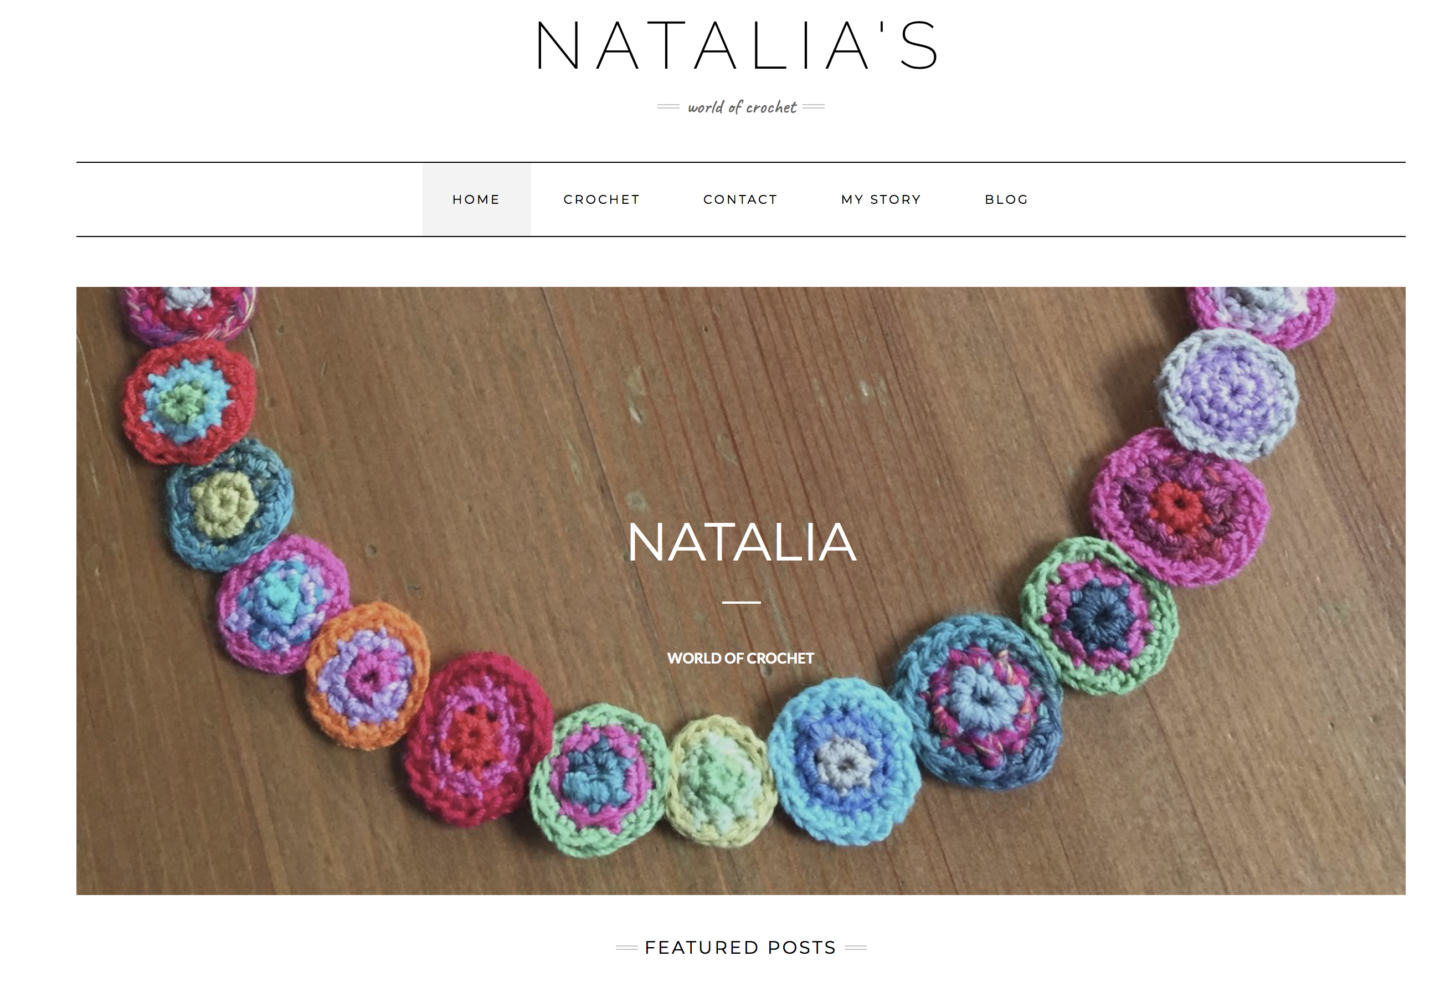 Natalia's - world of crochet